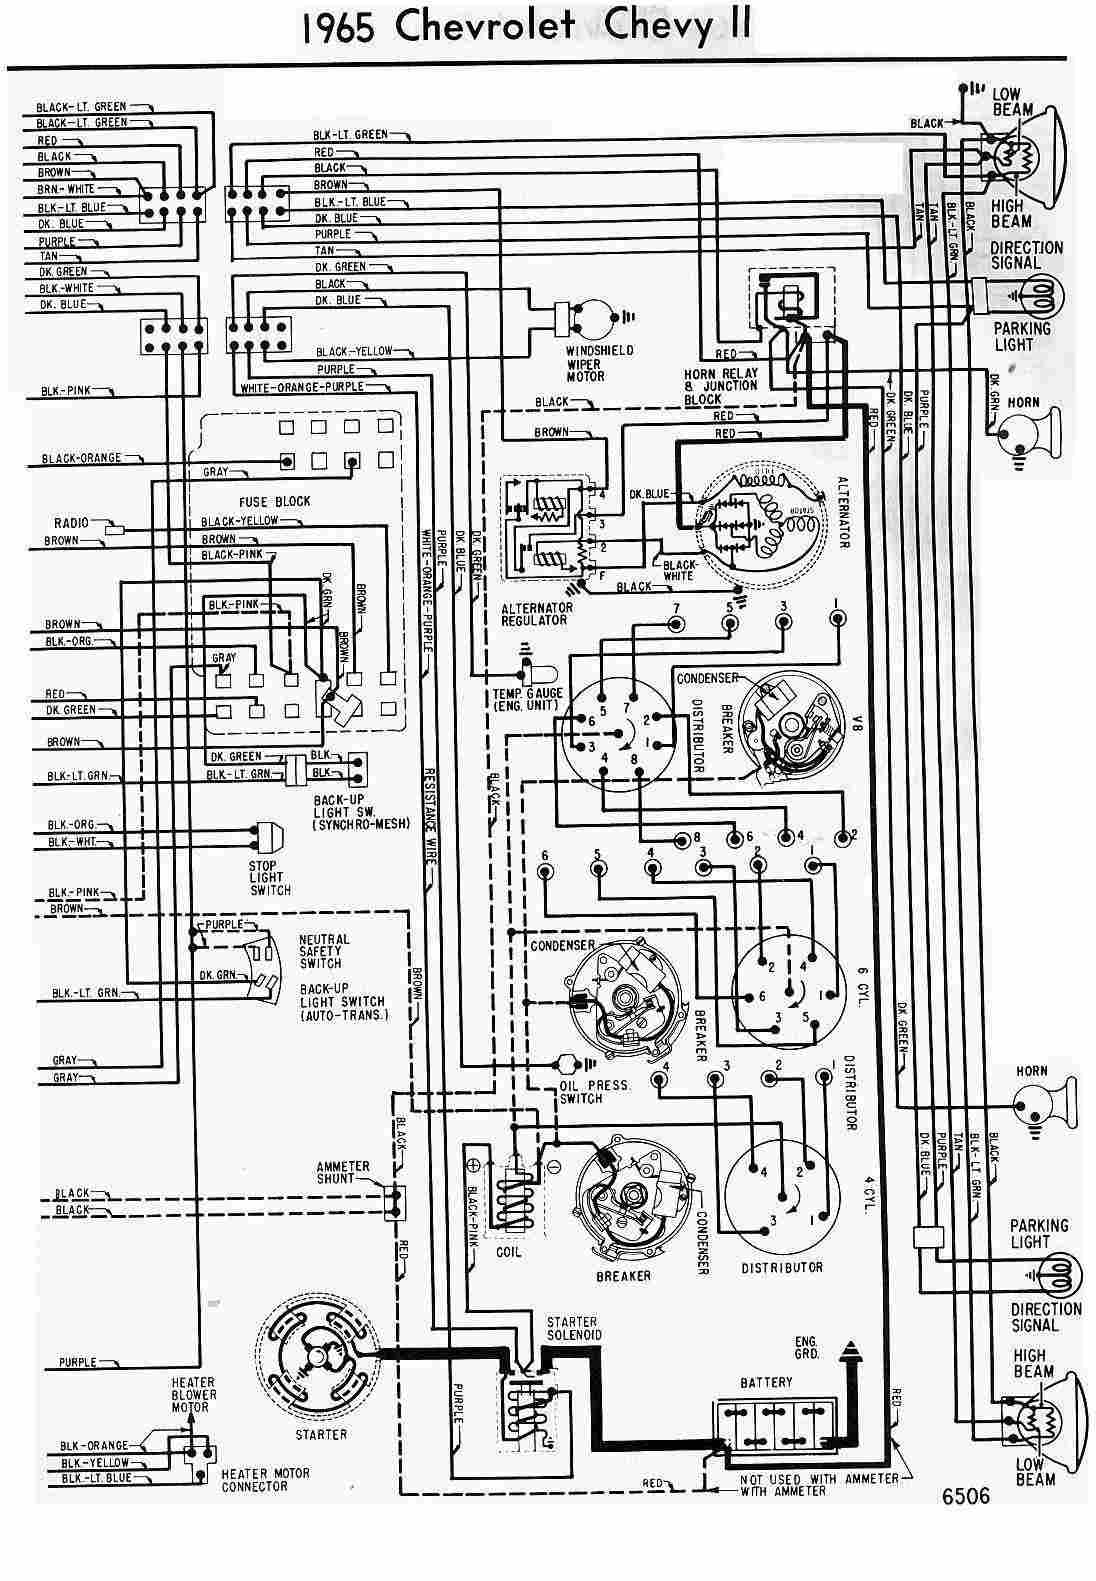 medium resolution of 1975 chevy truck wiring harness wiring diagram ebook1975 nova wiring harness wiring diagram1971 chevy nova wiring